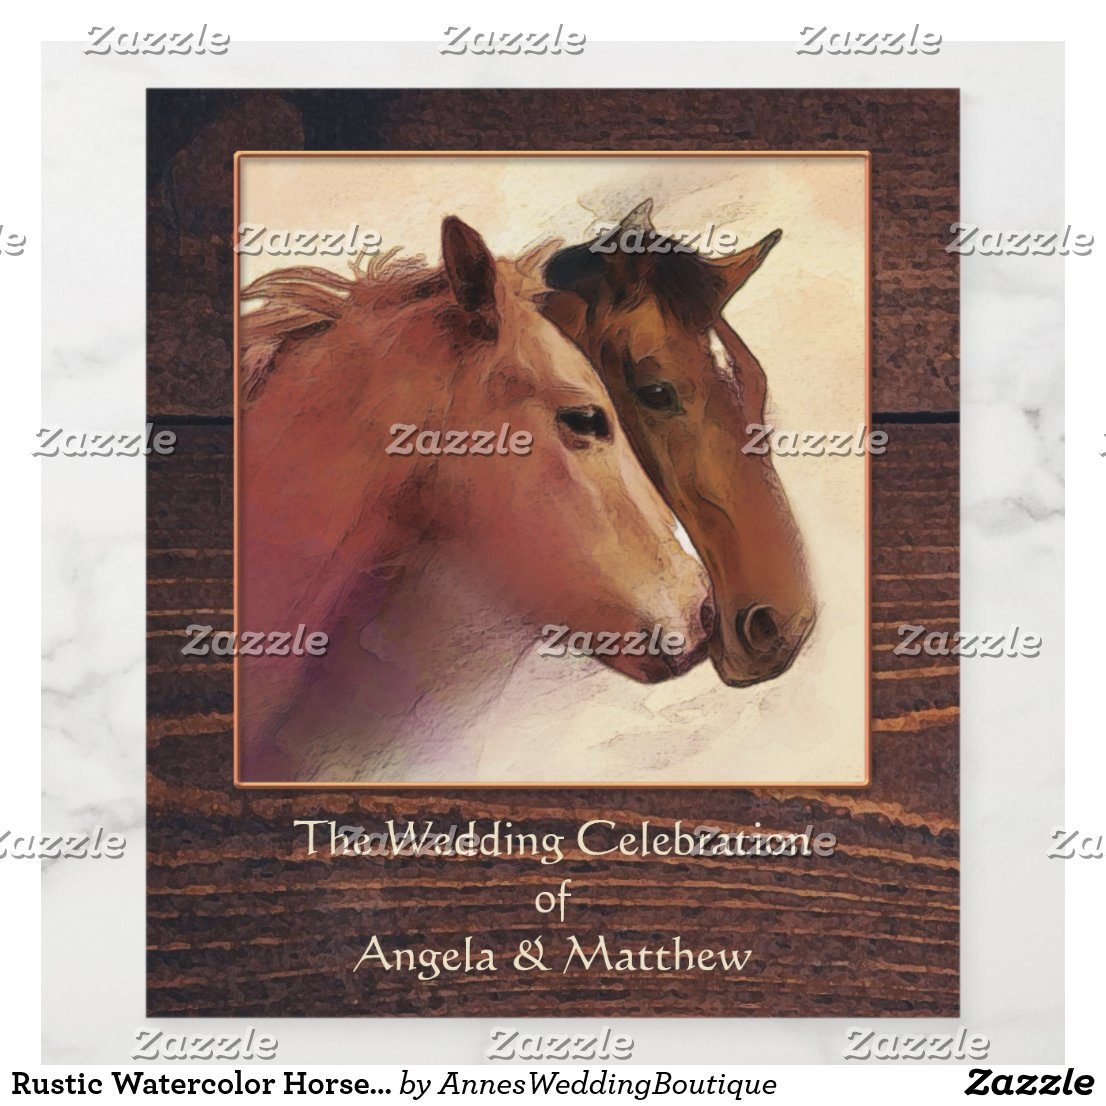 Rustic Watercolor Horses Wedding Wine Label